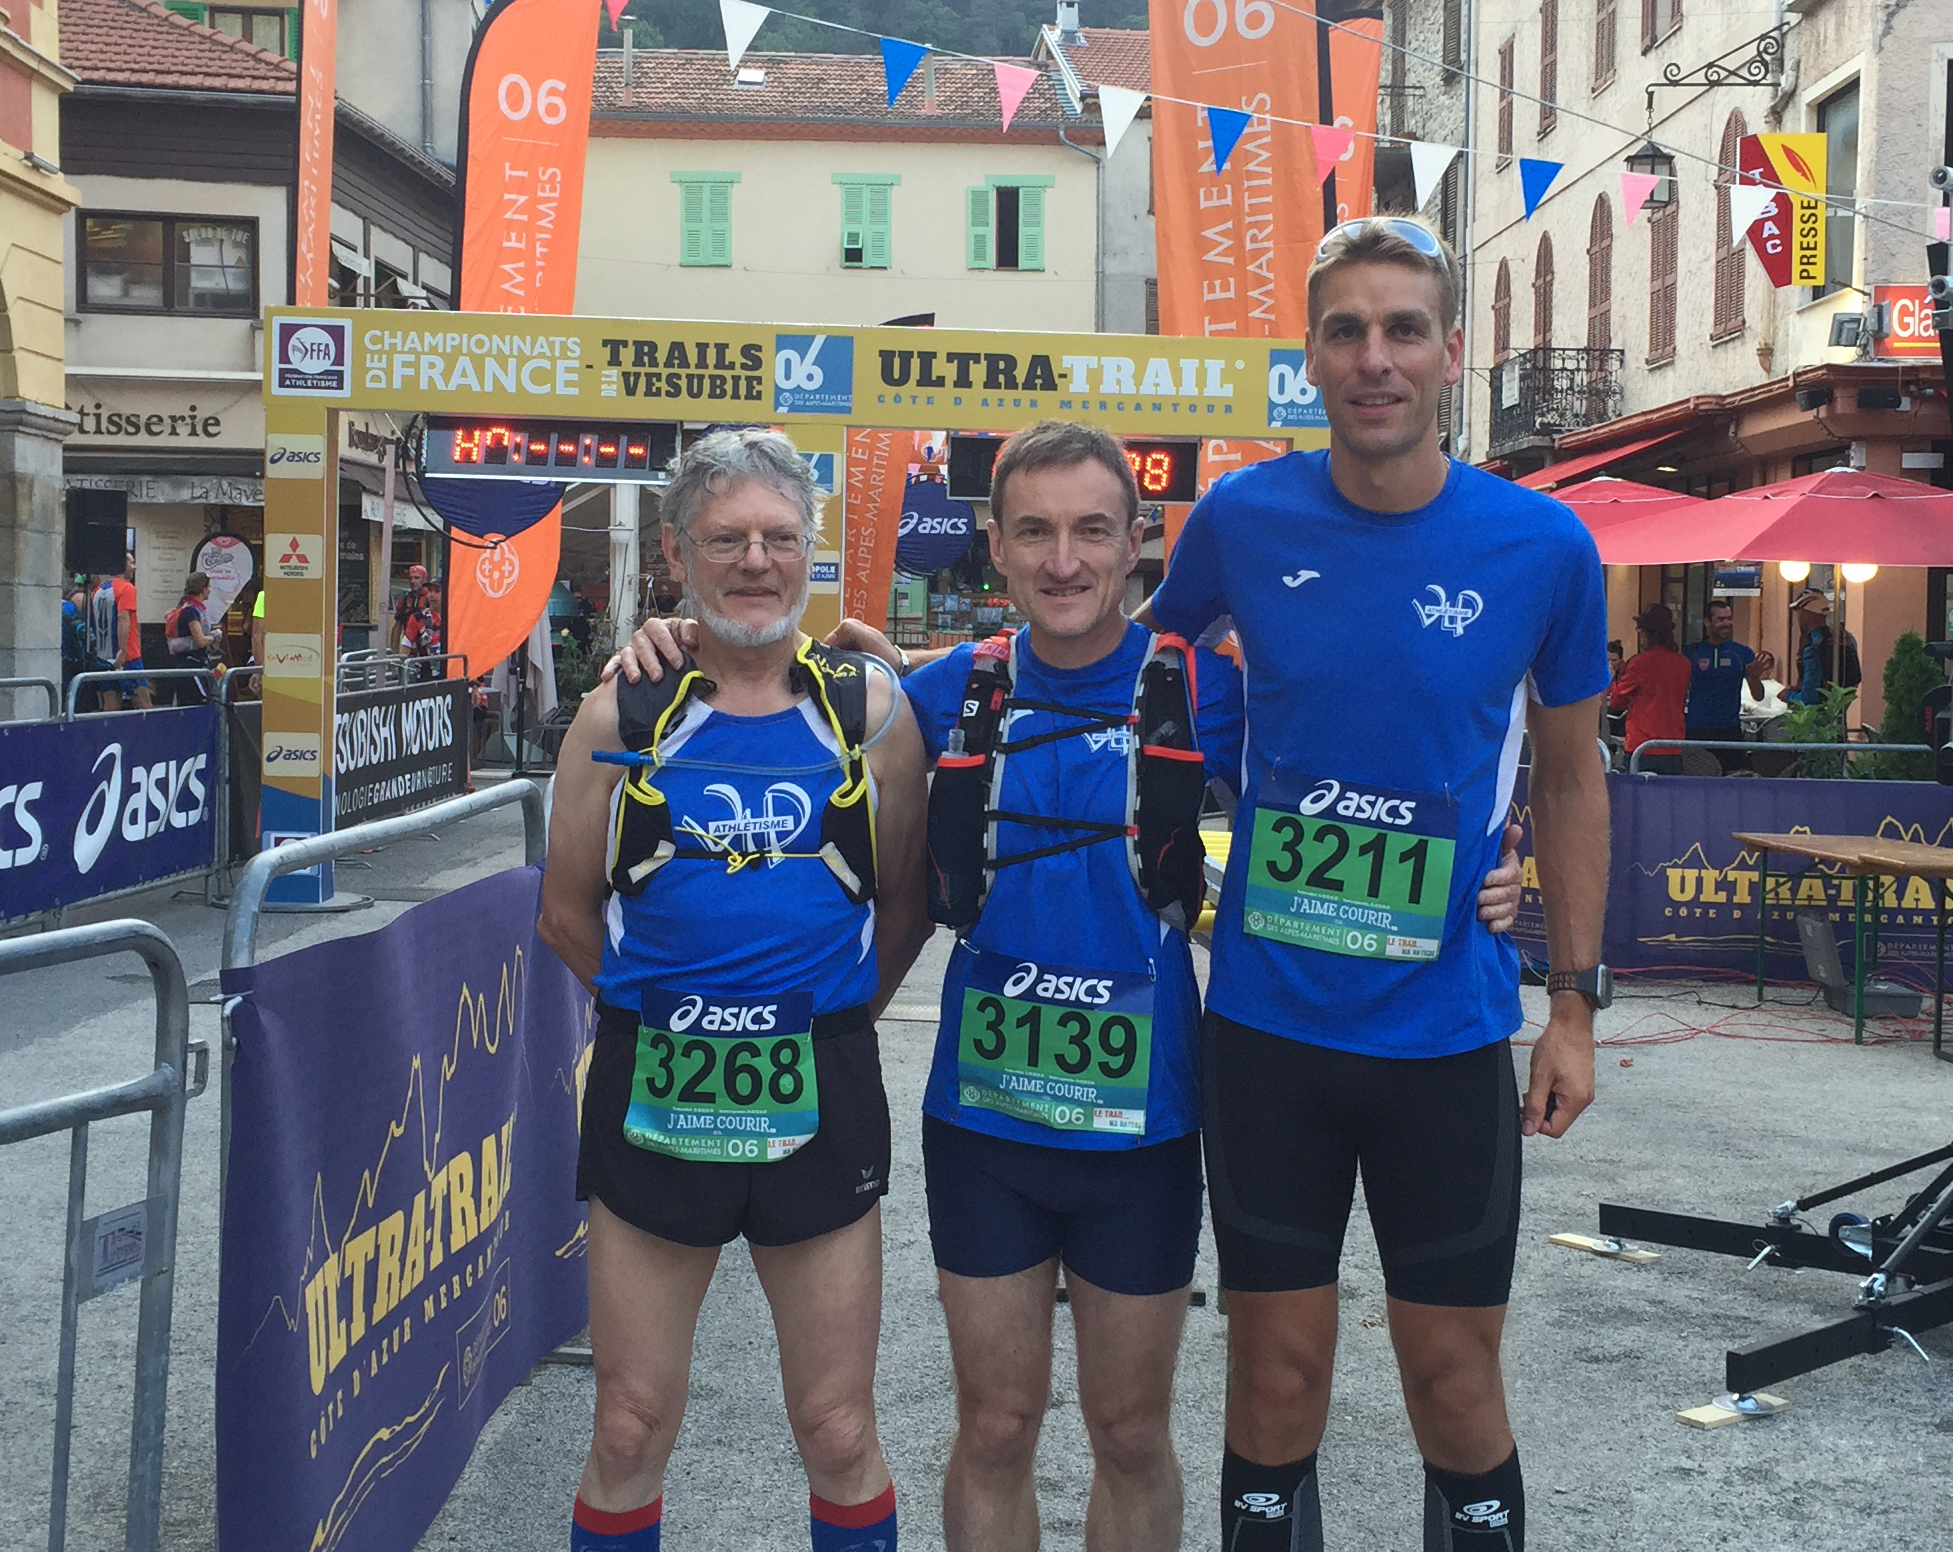 Championnat de France 2016 de trail court 30 km 2016, Trail Vesubie France